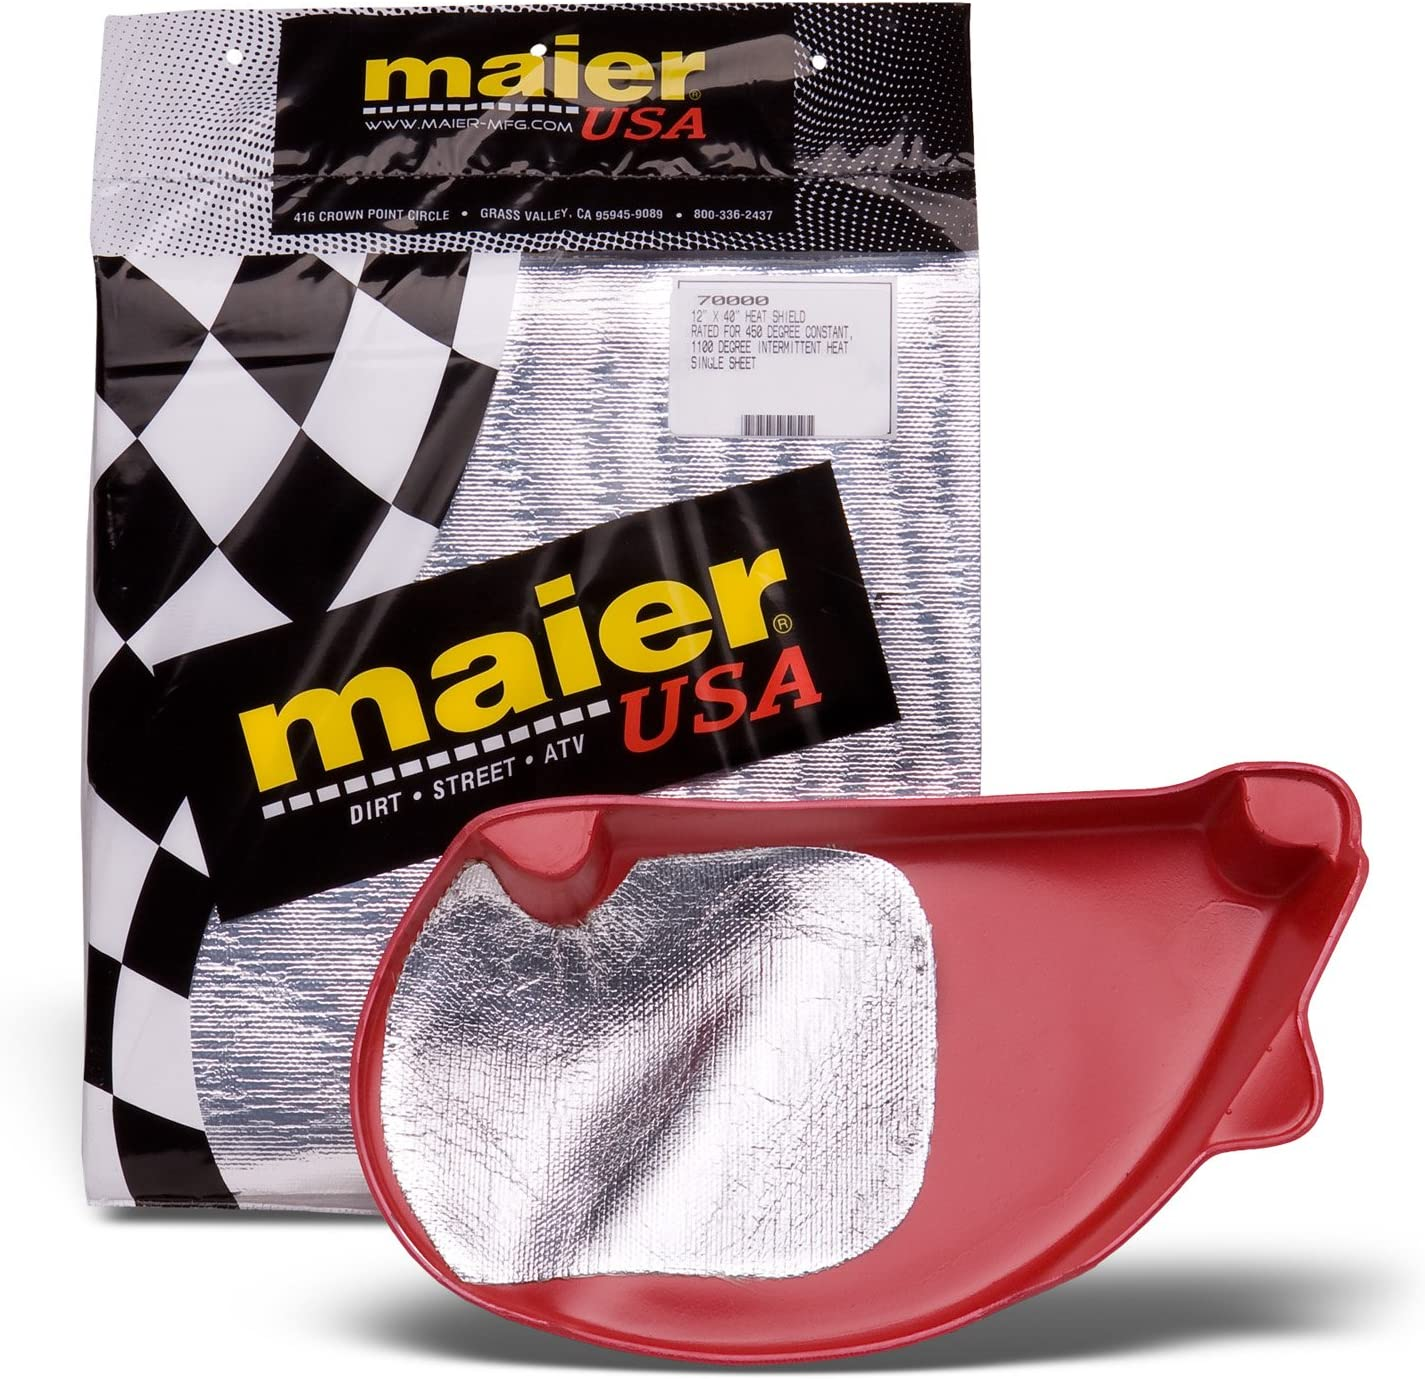 Maier USA 6 X 2 Heat Tile Kit 69995